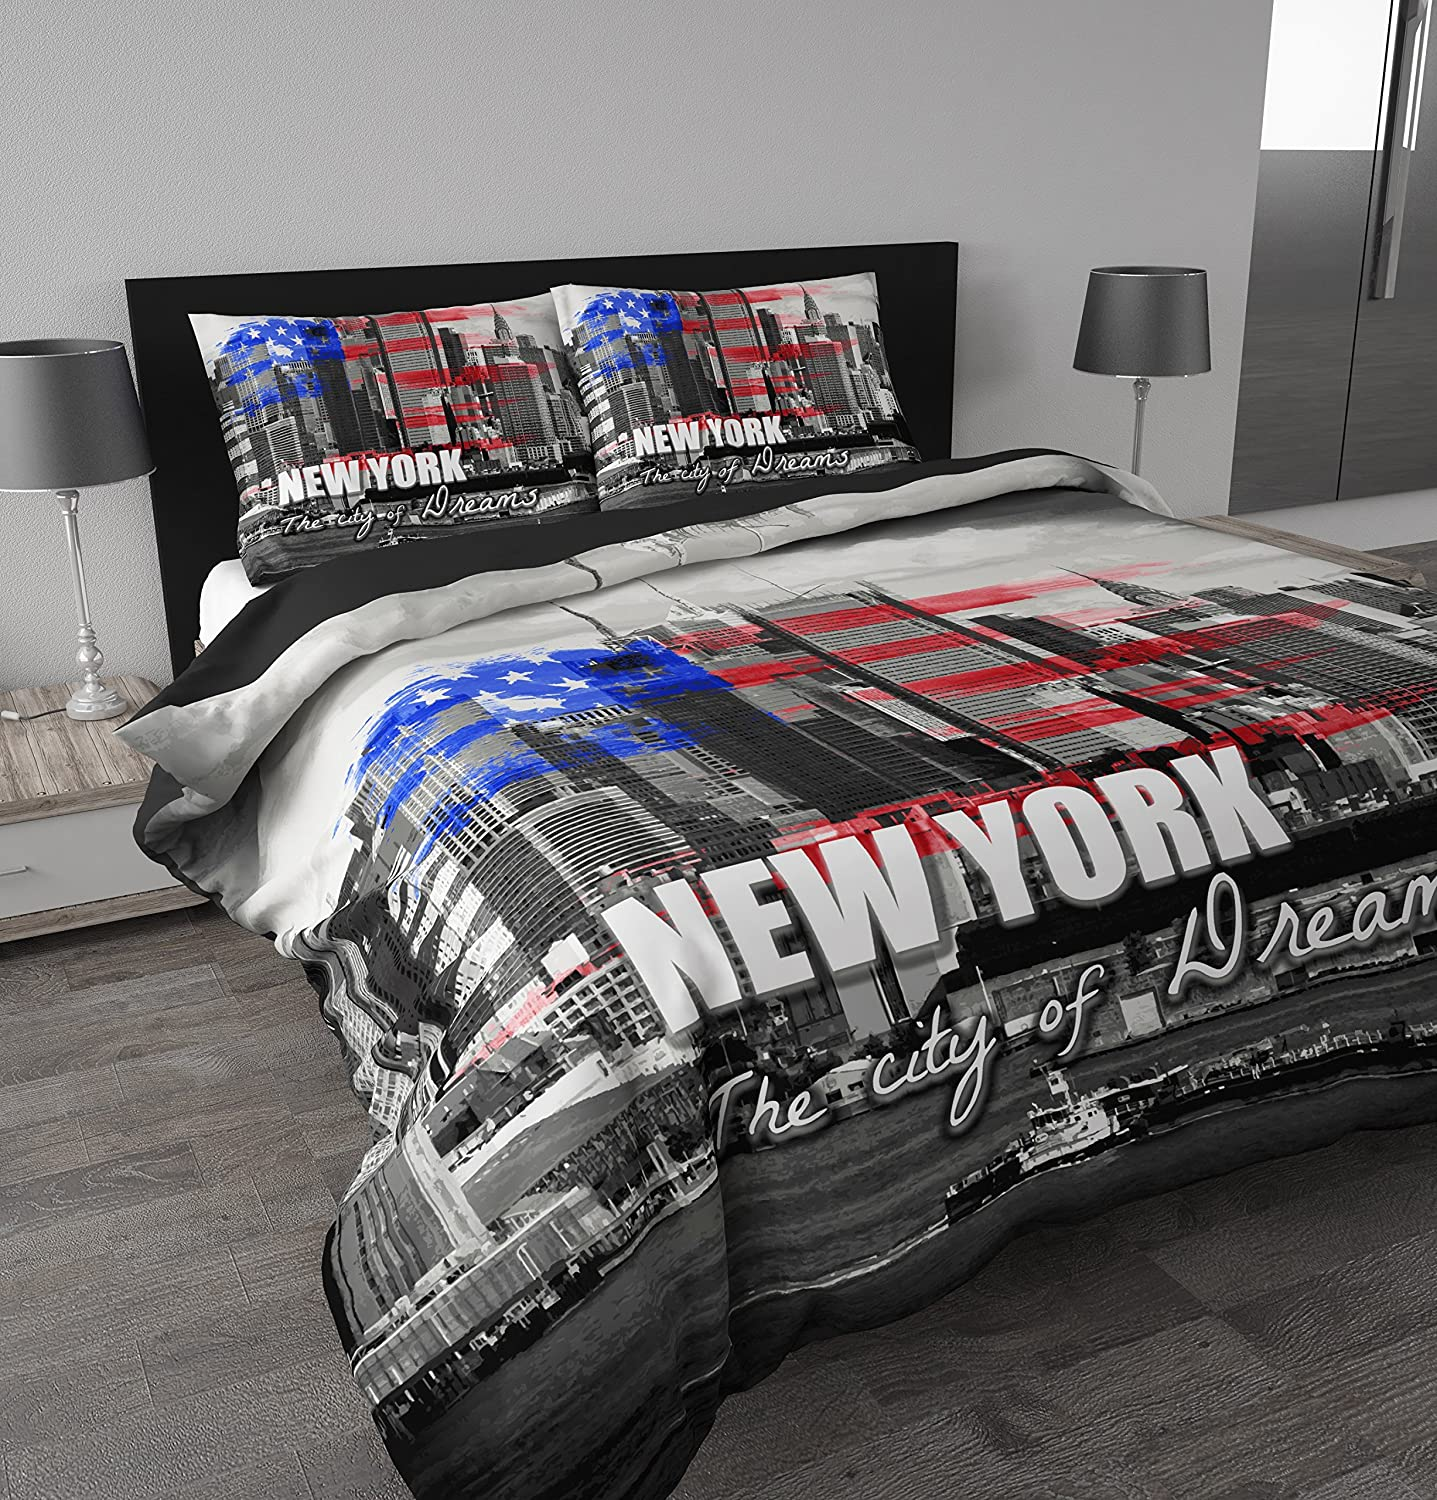 Housse De Couette New York Conforama Housse Couette New York Personne